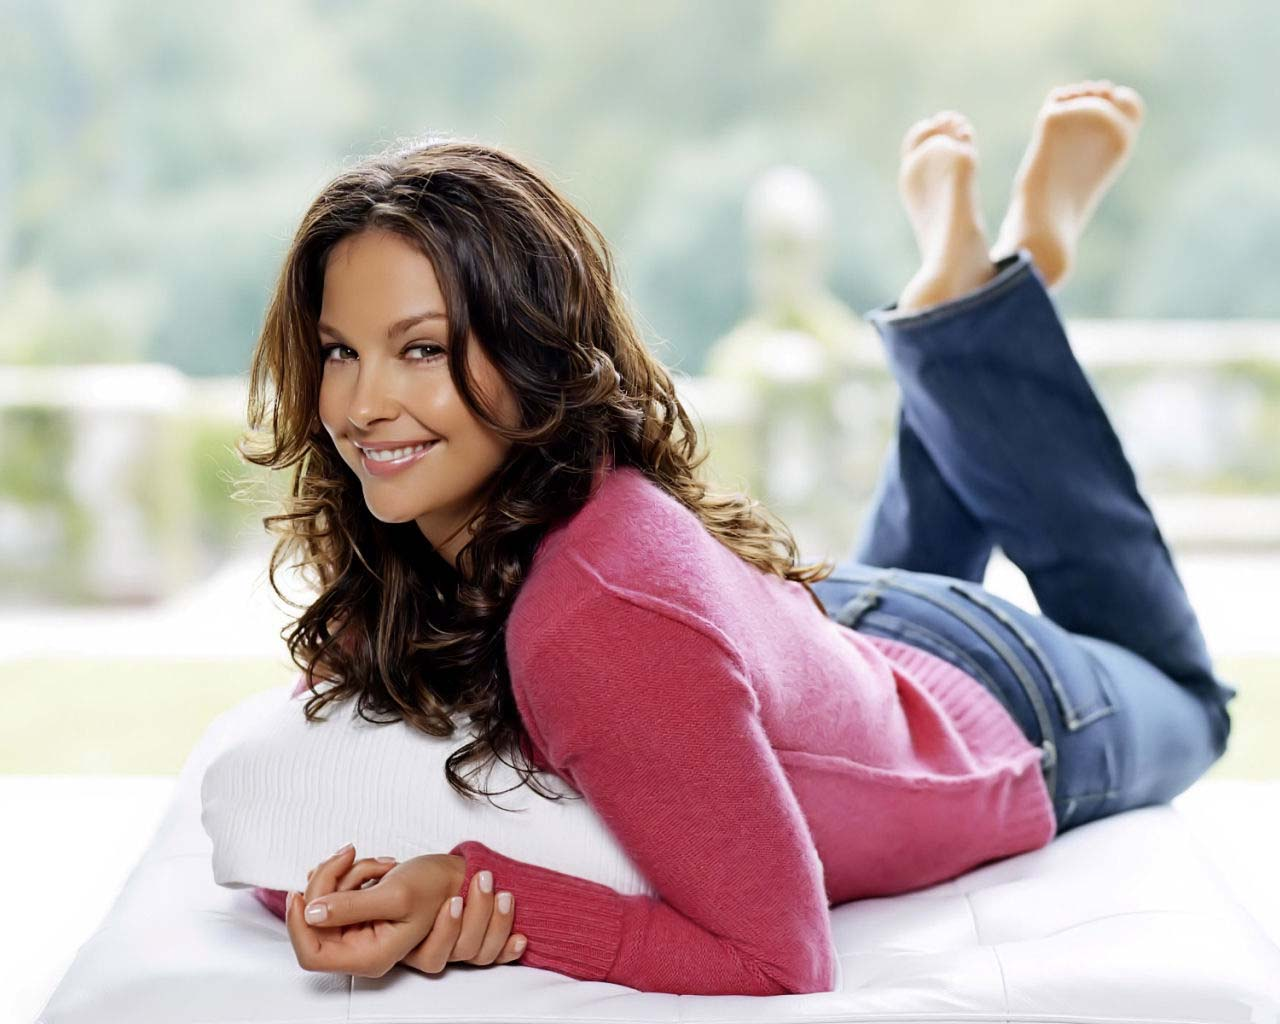 http://1.bp.blogspot.com/_BpAoKRSdVjQ/TTkAFbWcUcI/AAAAAAAAEHM/G4VVrMF093g/s1600/ashley-judd-hollywood-actress.jpg